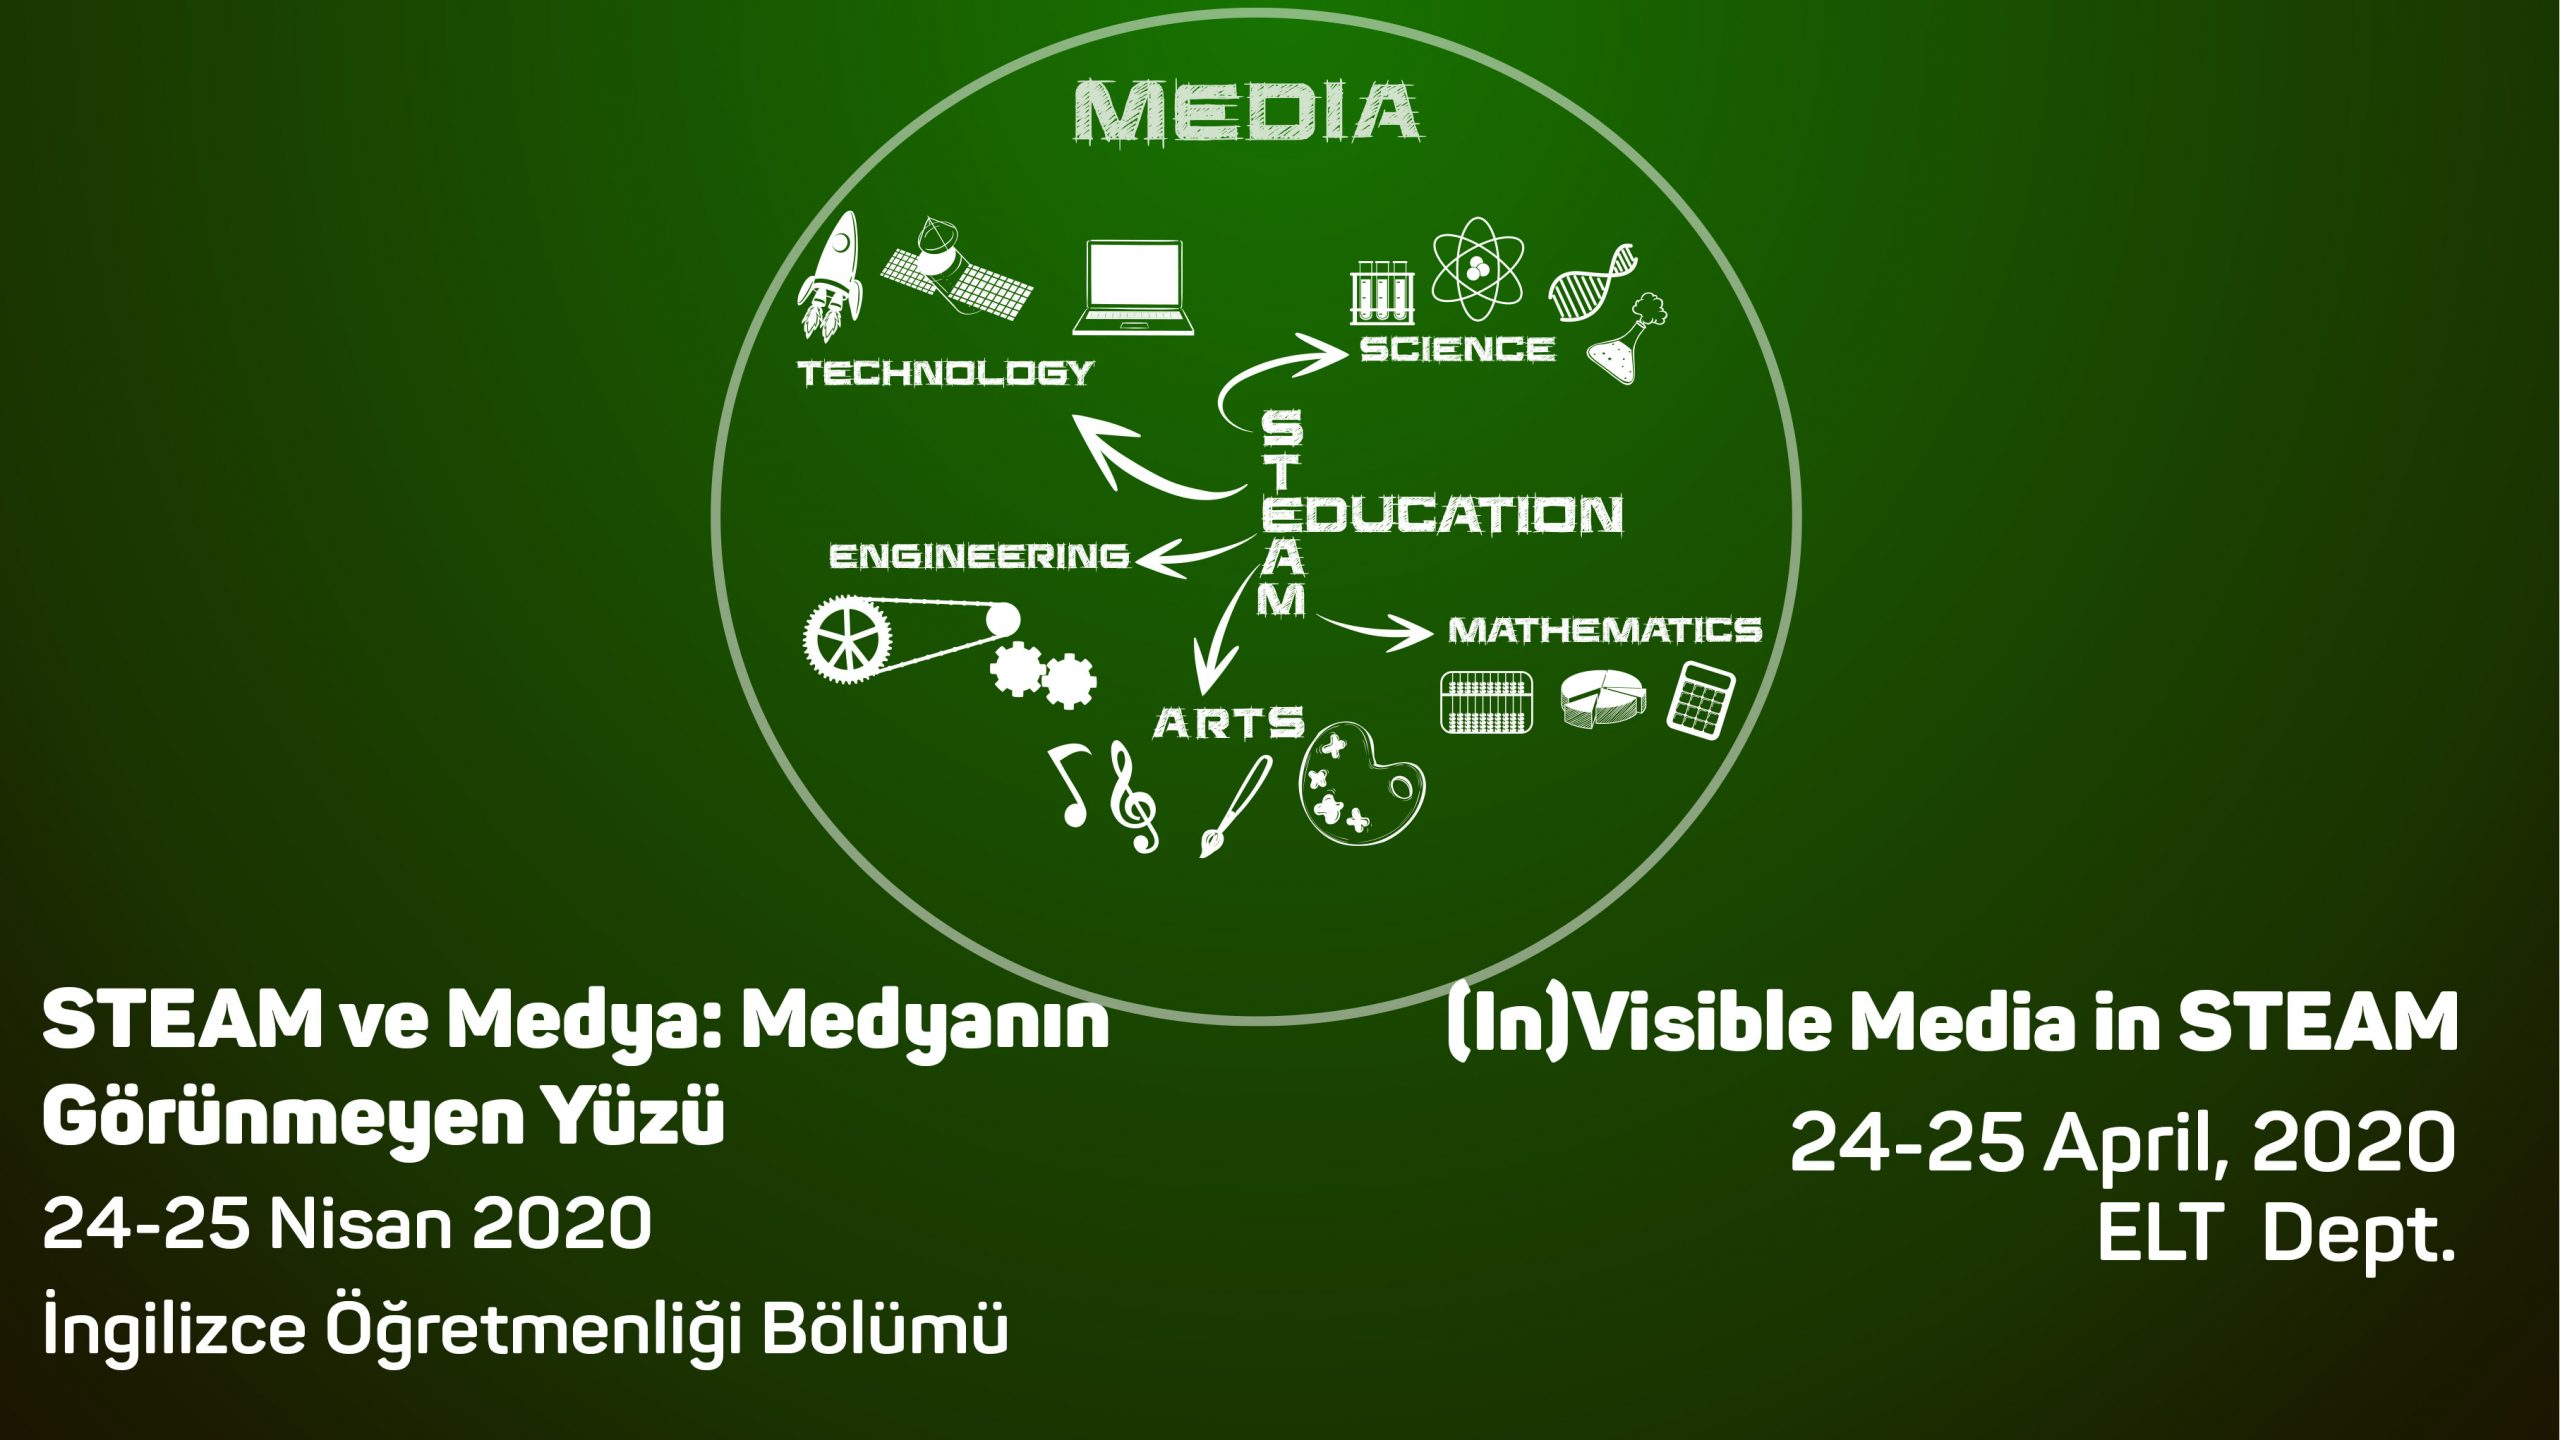 language tr turkish turkce slider banner shadow abstract submission call for papers april 24 25 2020 invisible media in steam international conference cag university call for papers as committees call for papers abstract submission